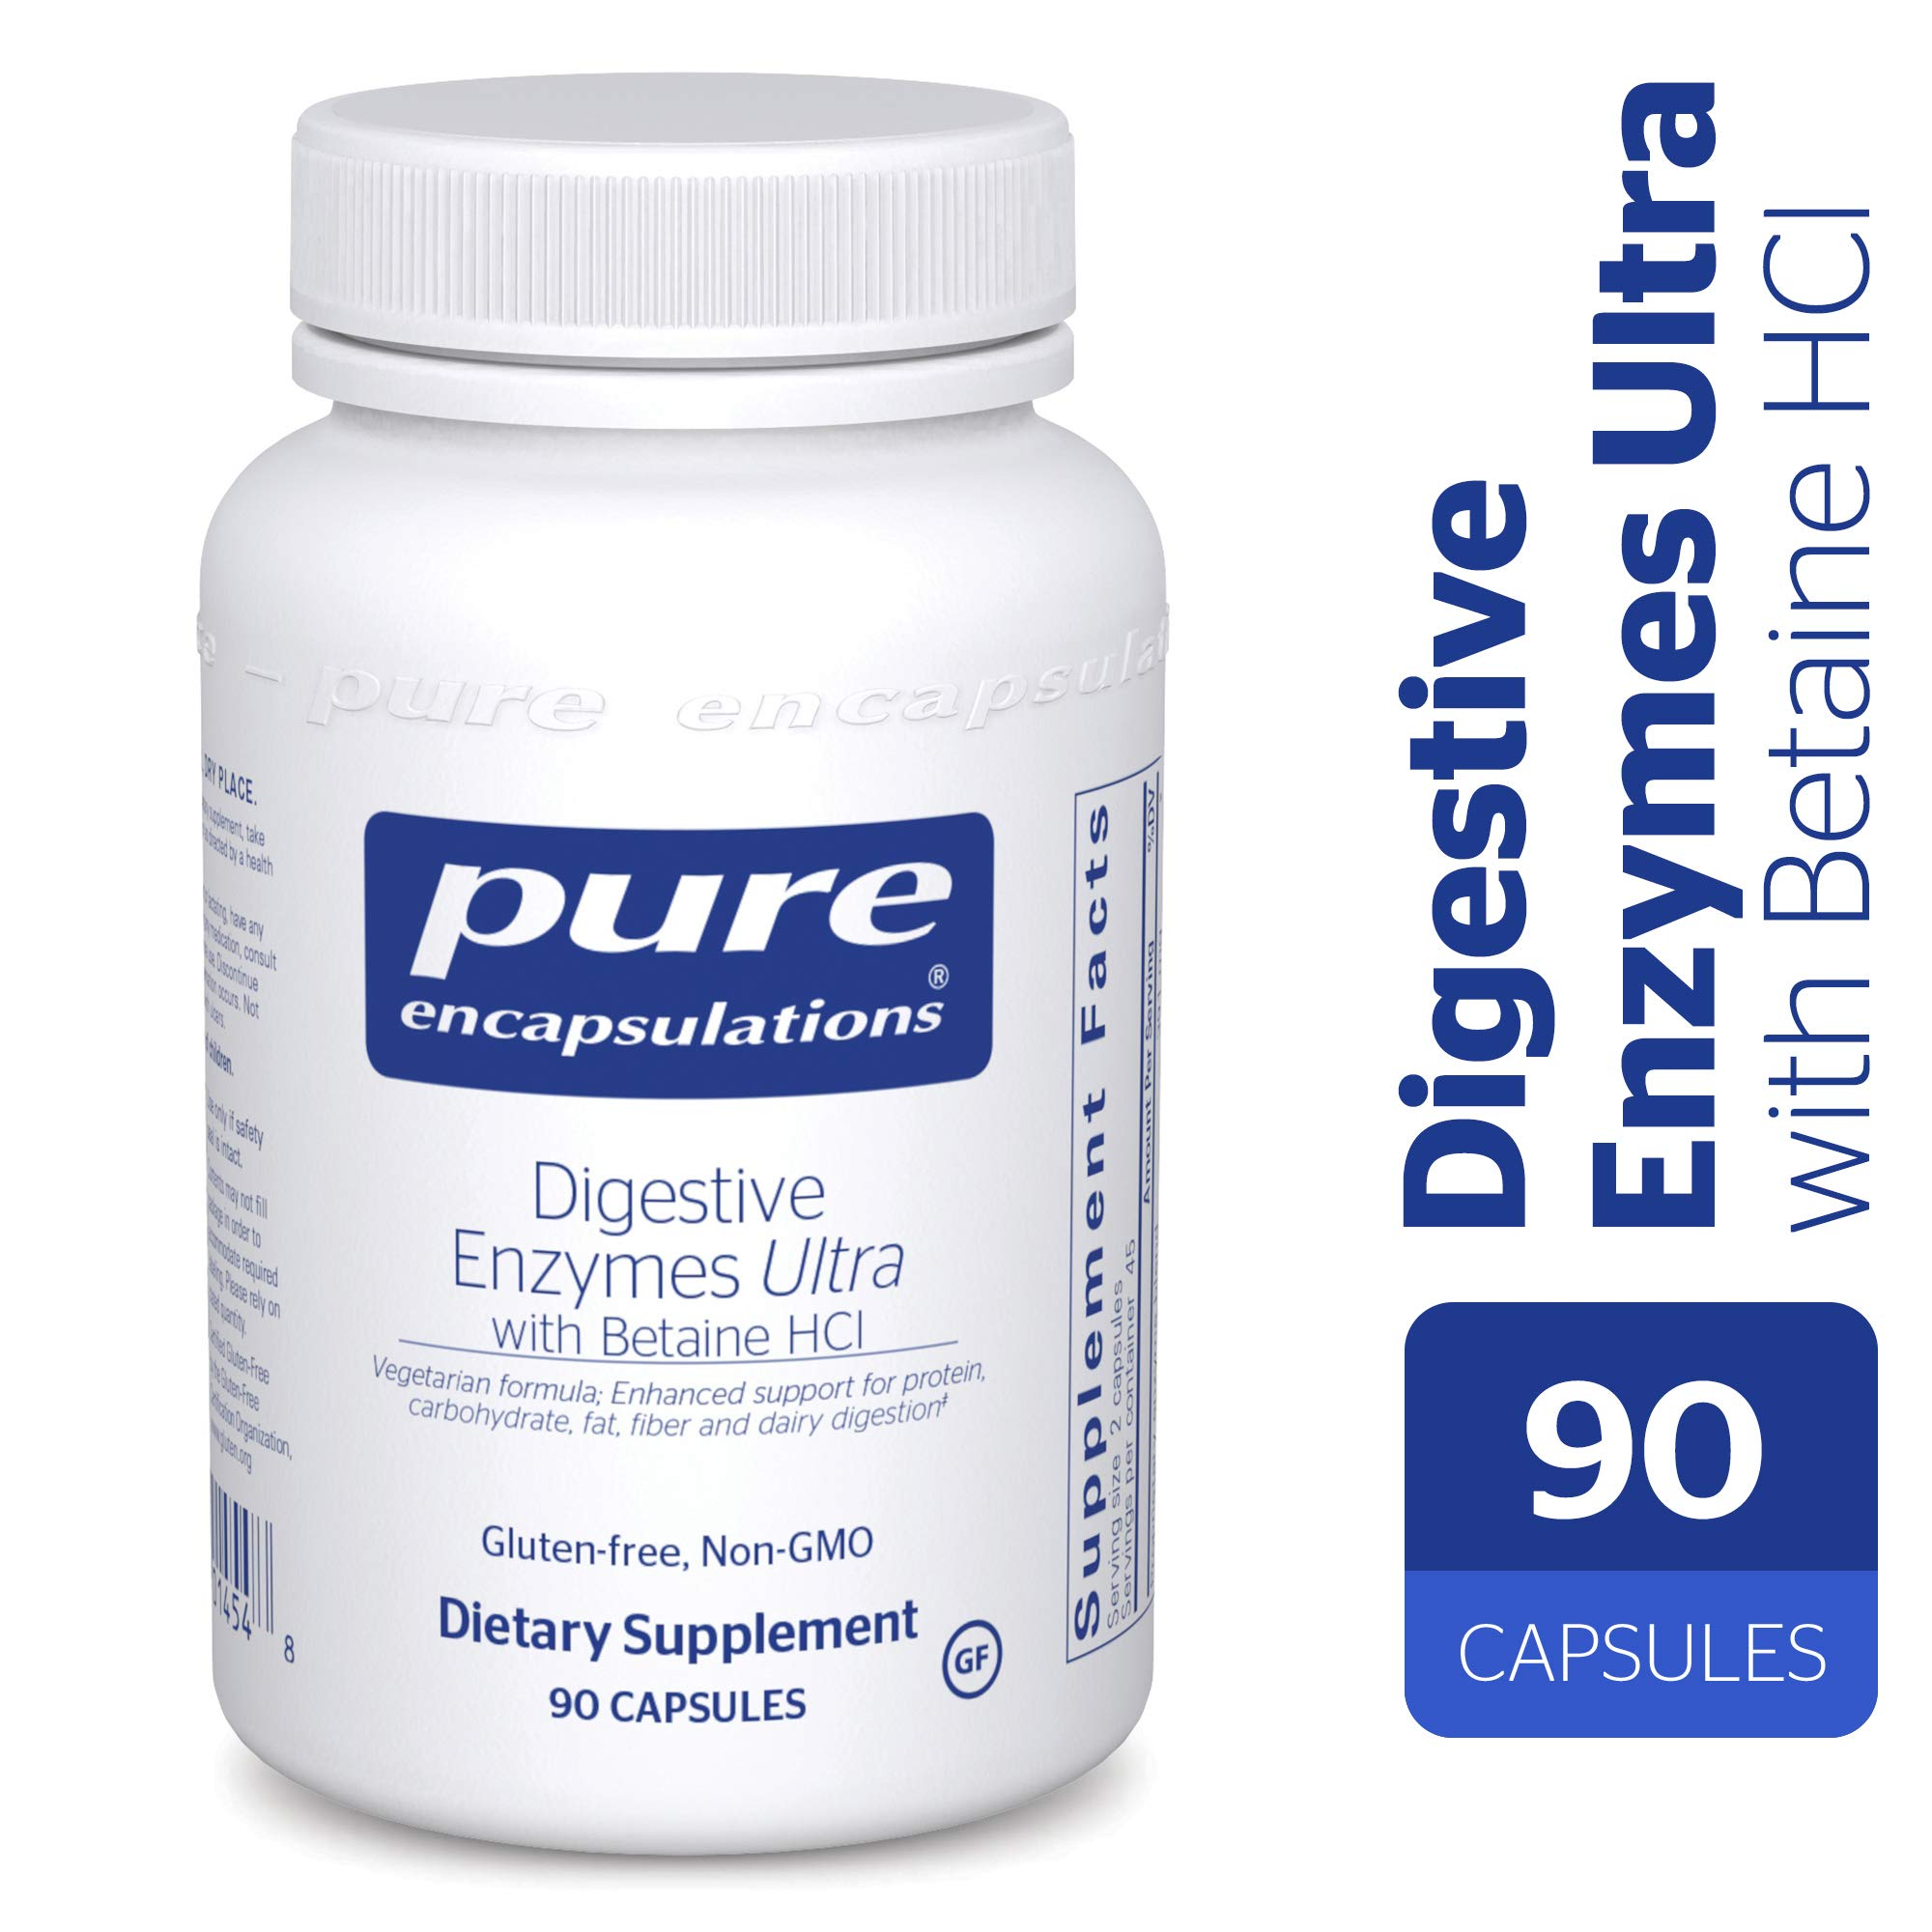 Pure Encapsulations - Digestive Enzymes Ultra with Betaine HCl - Comprehensive Blend of Vegetarian Digestive Enzymes with Betaine HCl - 90 Capsules by Pure Encapsulations